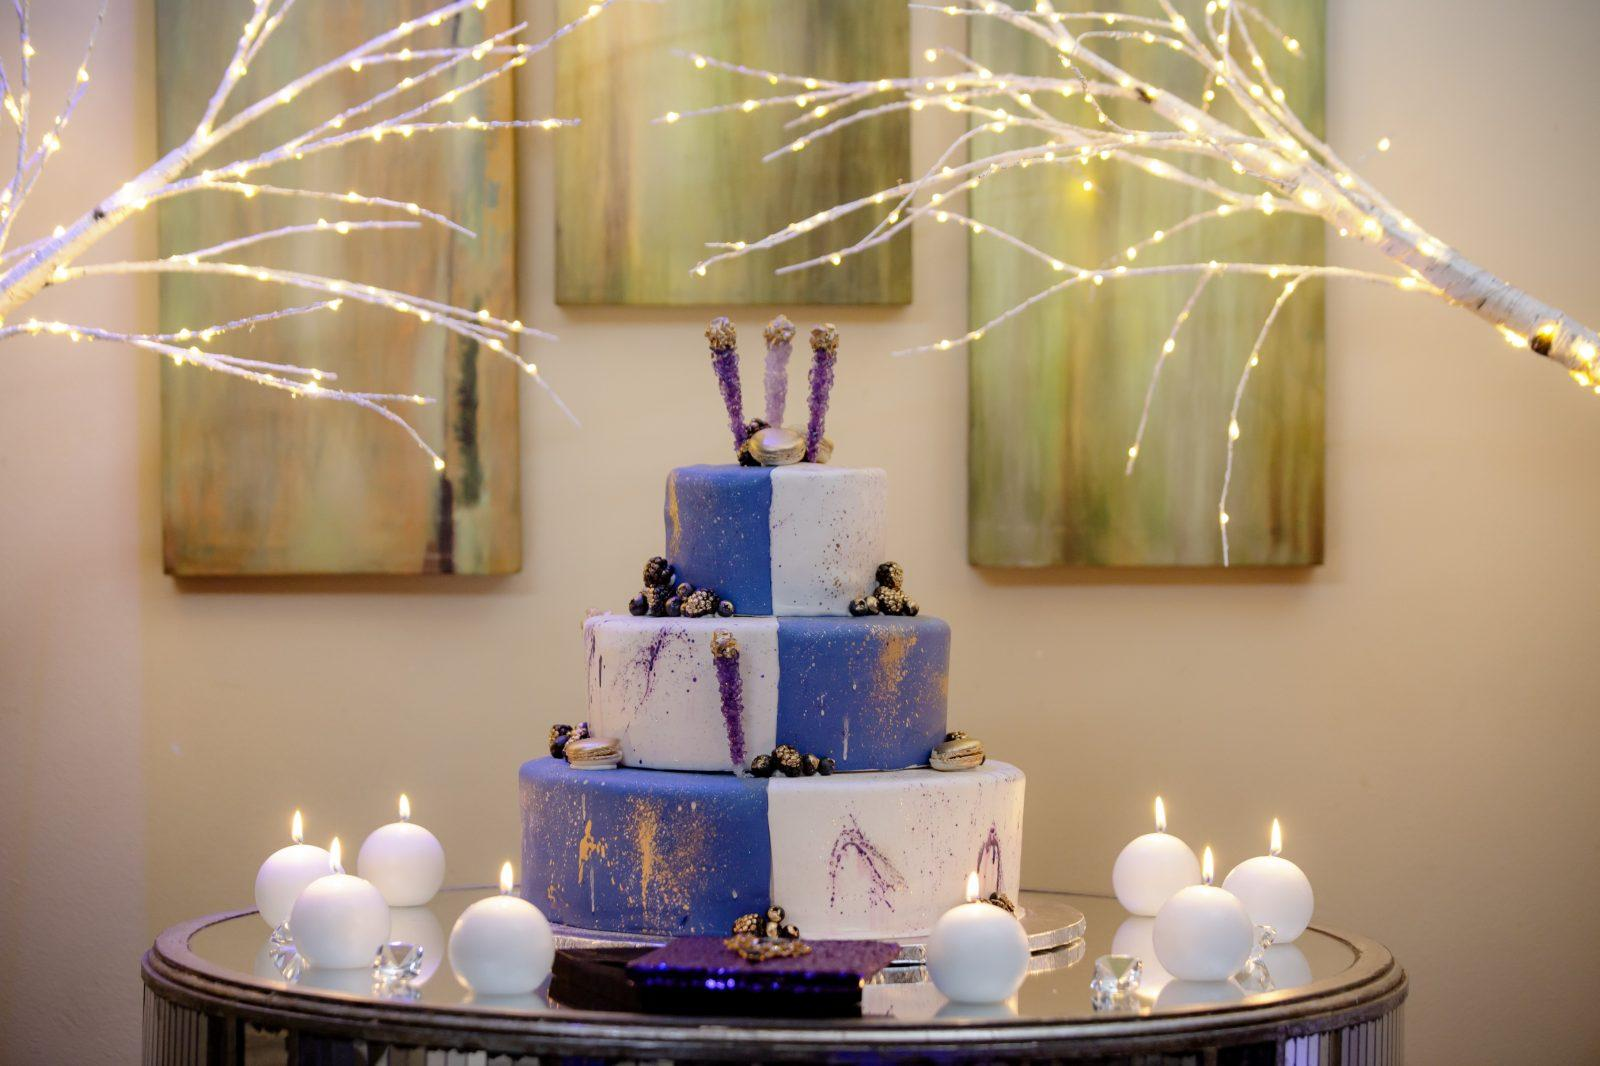 Gambino's Bakery Purple Rain cake. Photo: Brian Jarreau Photography